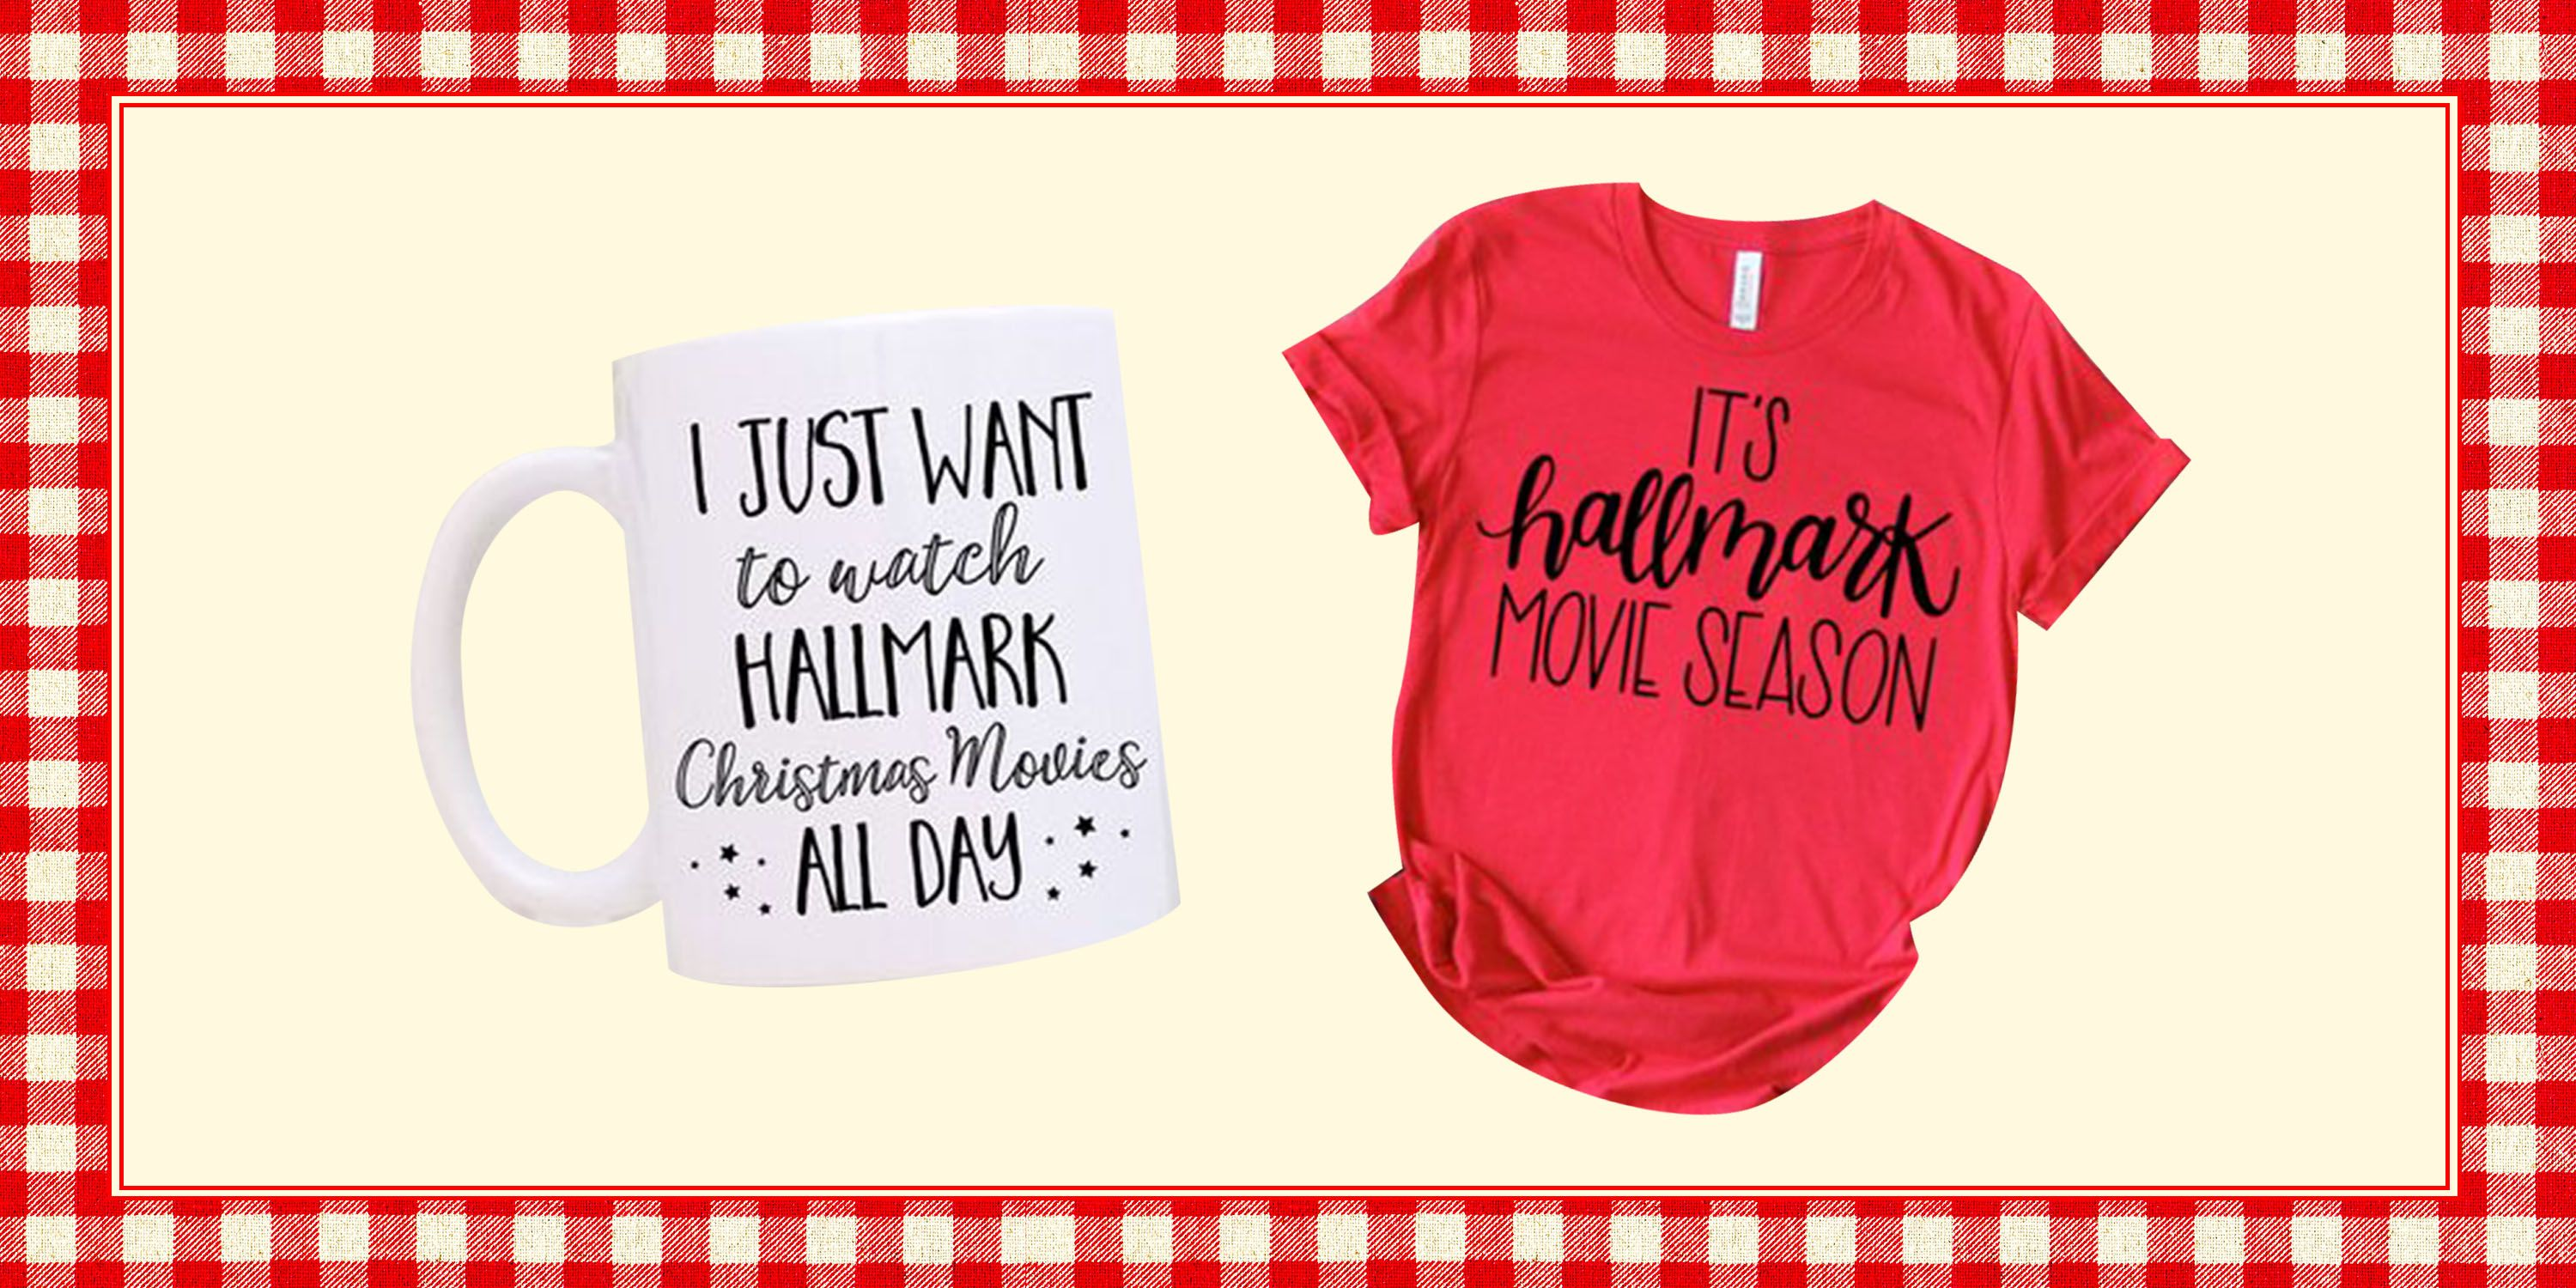 hallmark christmas movies accessories gifts